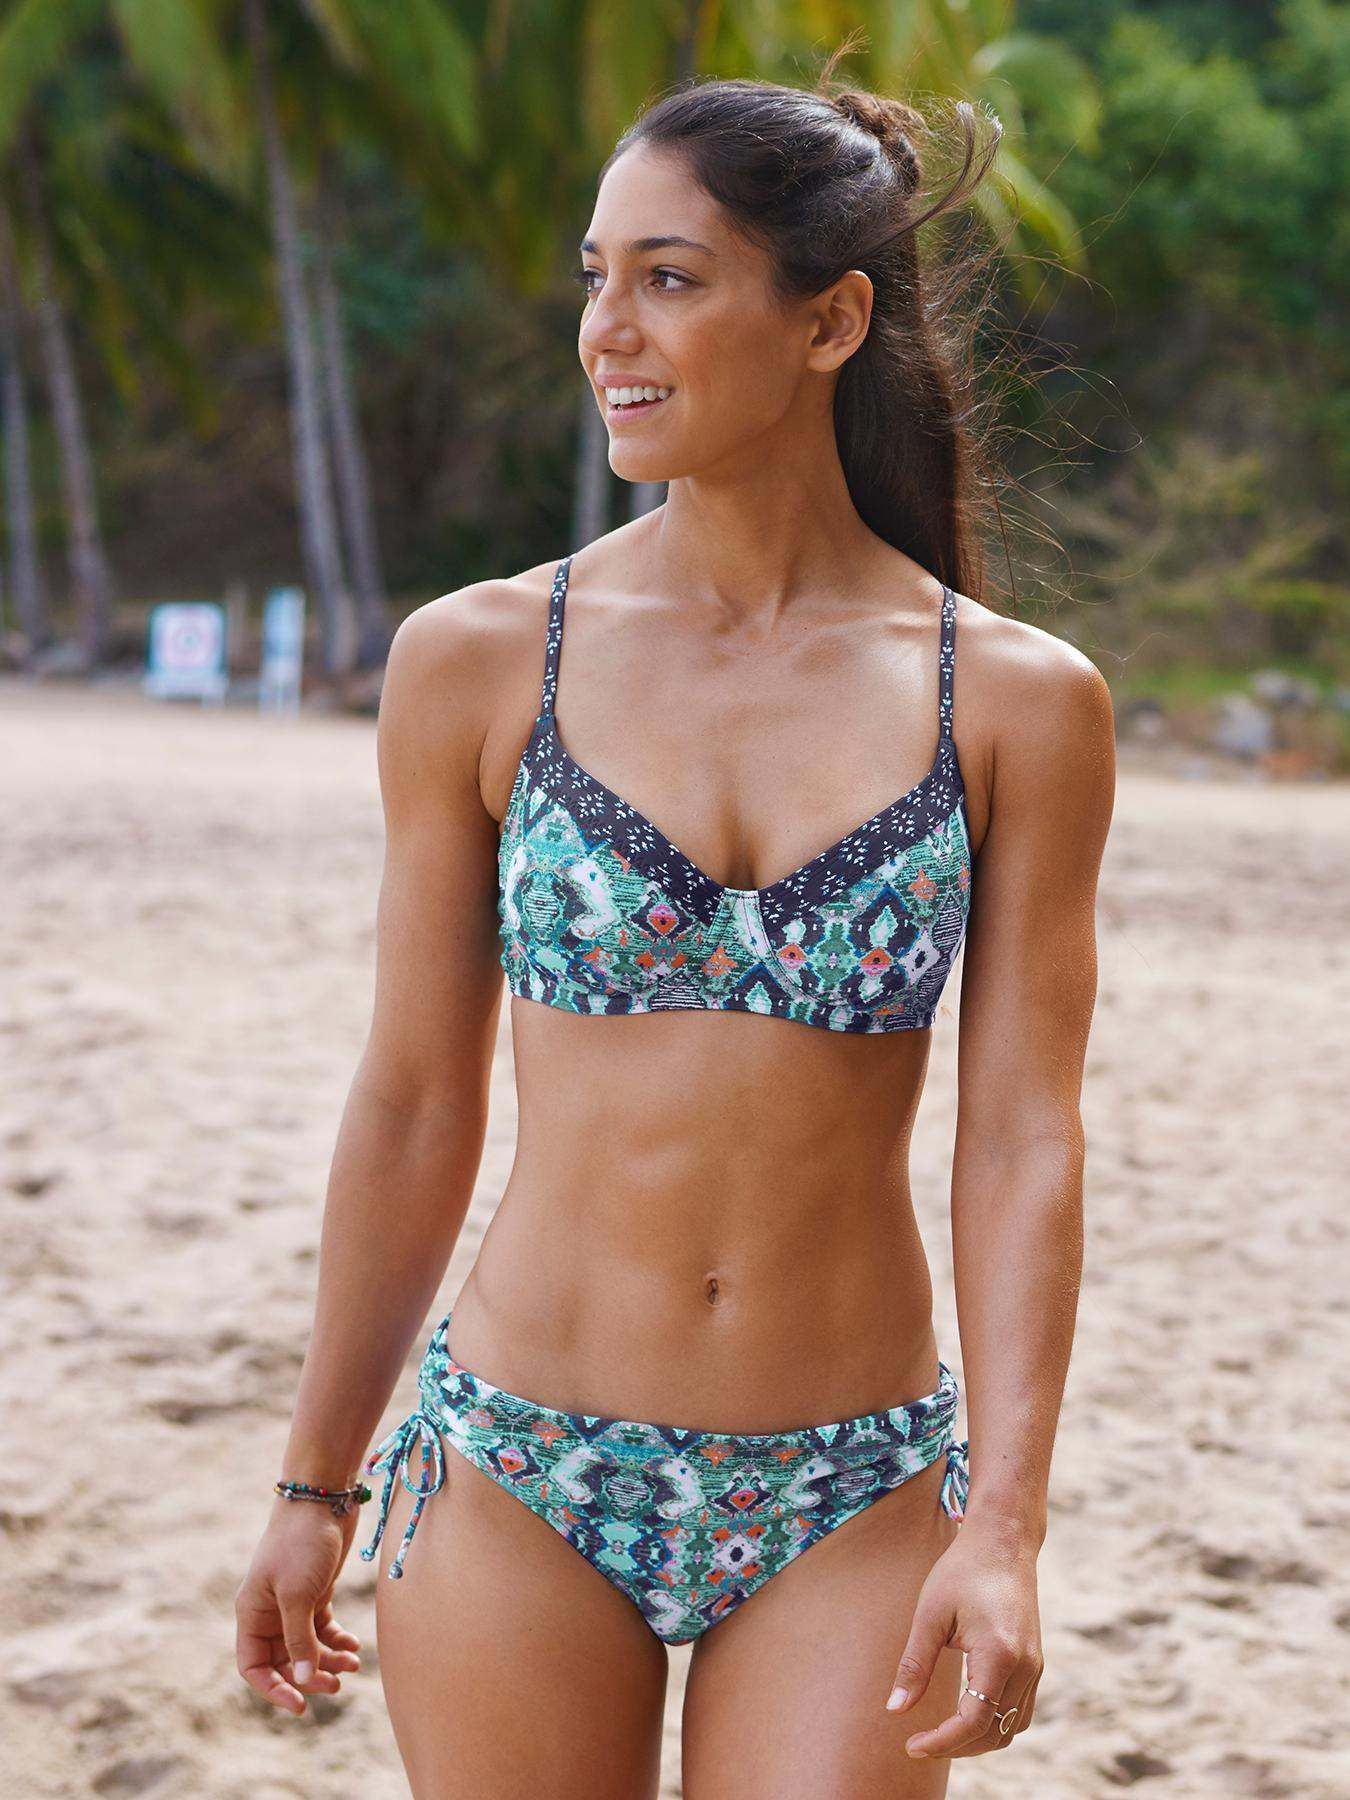 Allison Stokke on Beach